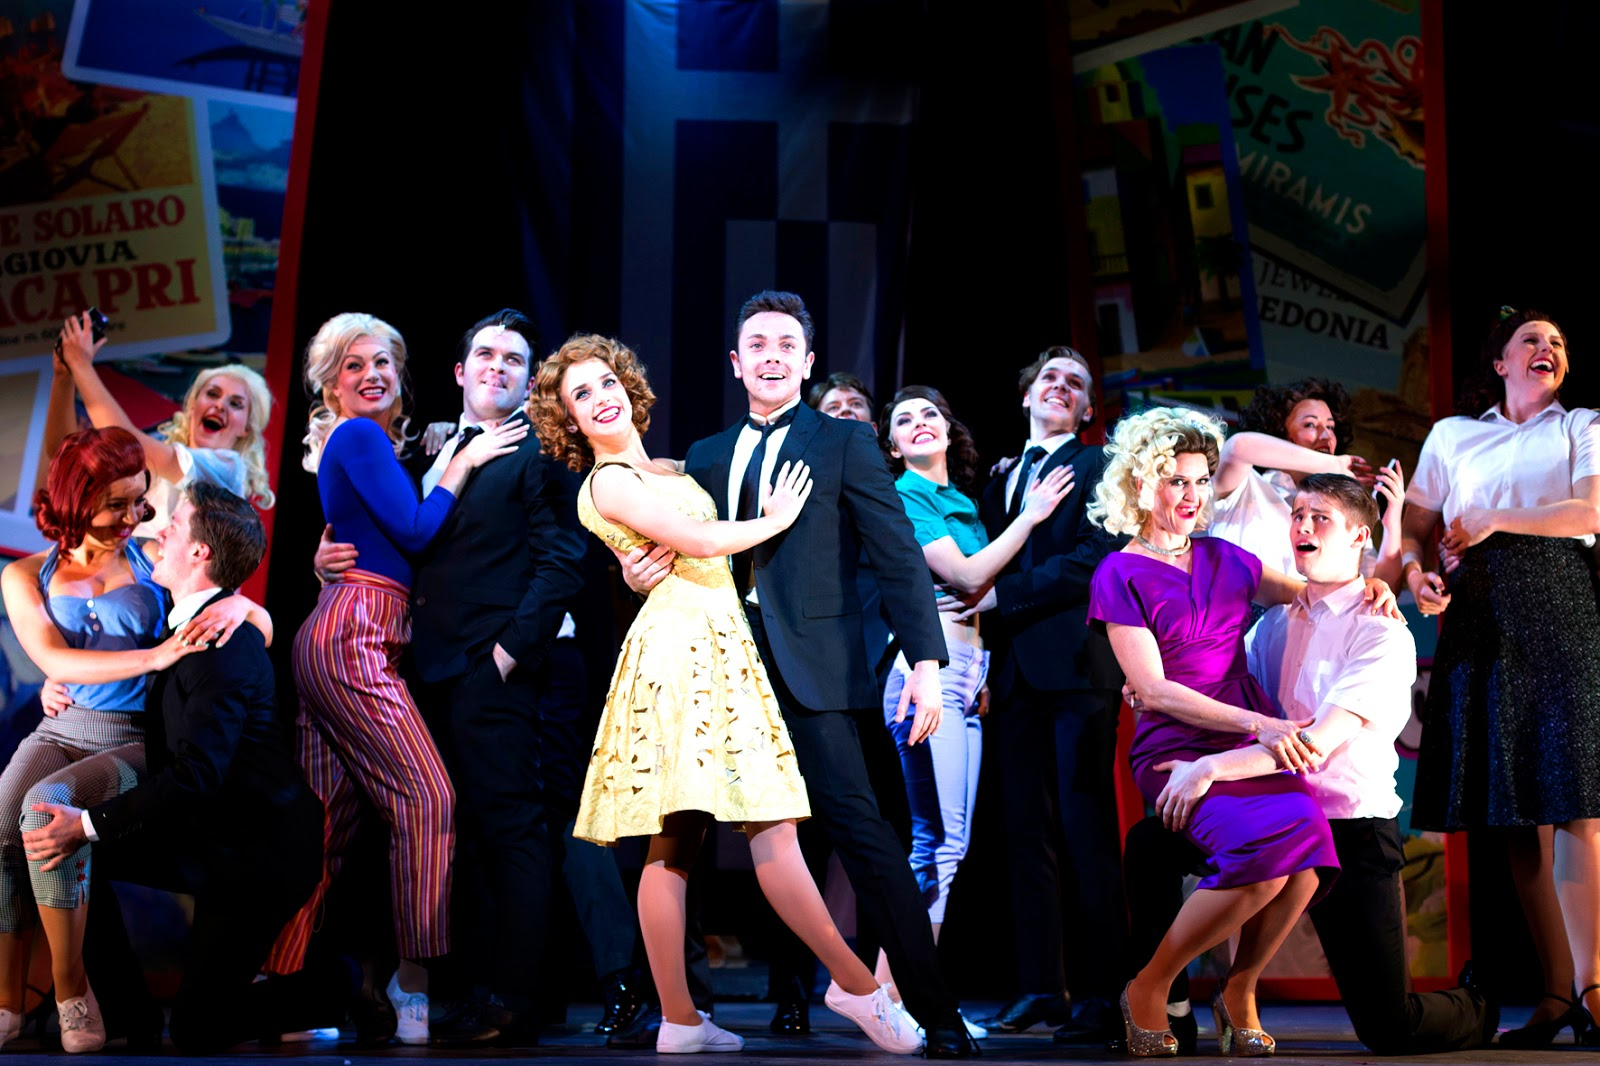 ray quinn summer holiday the musical cast review darlington hippodrome